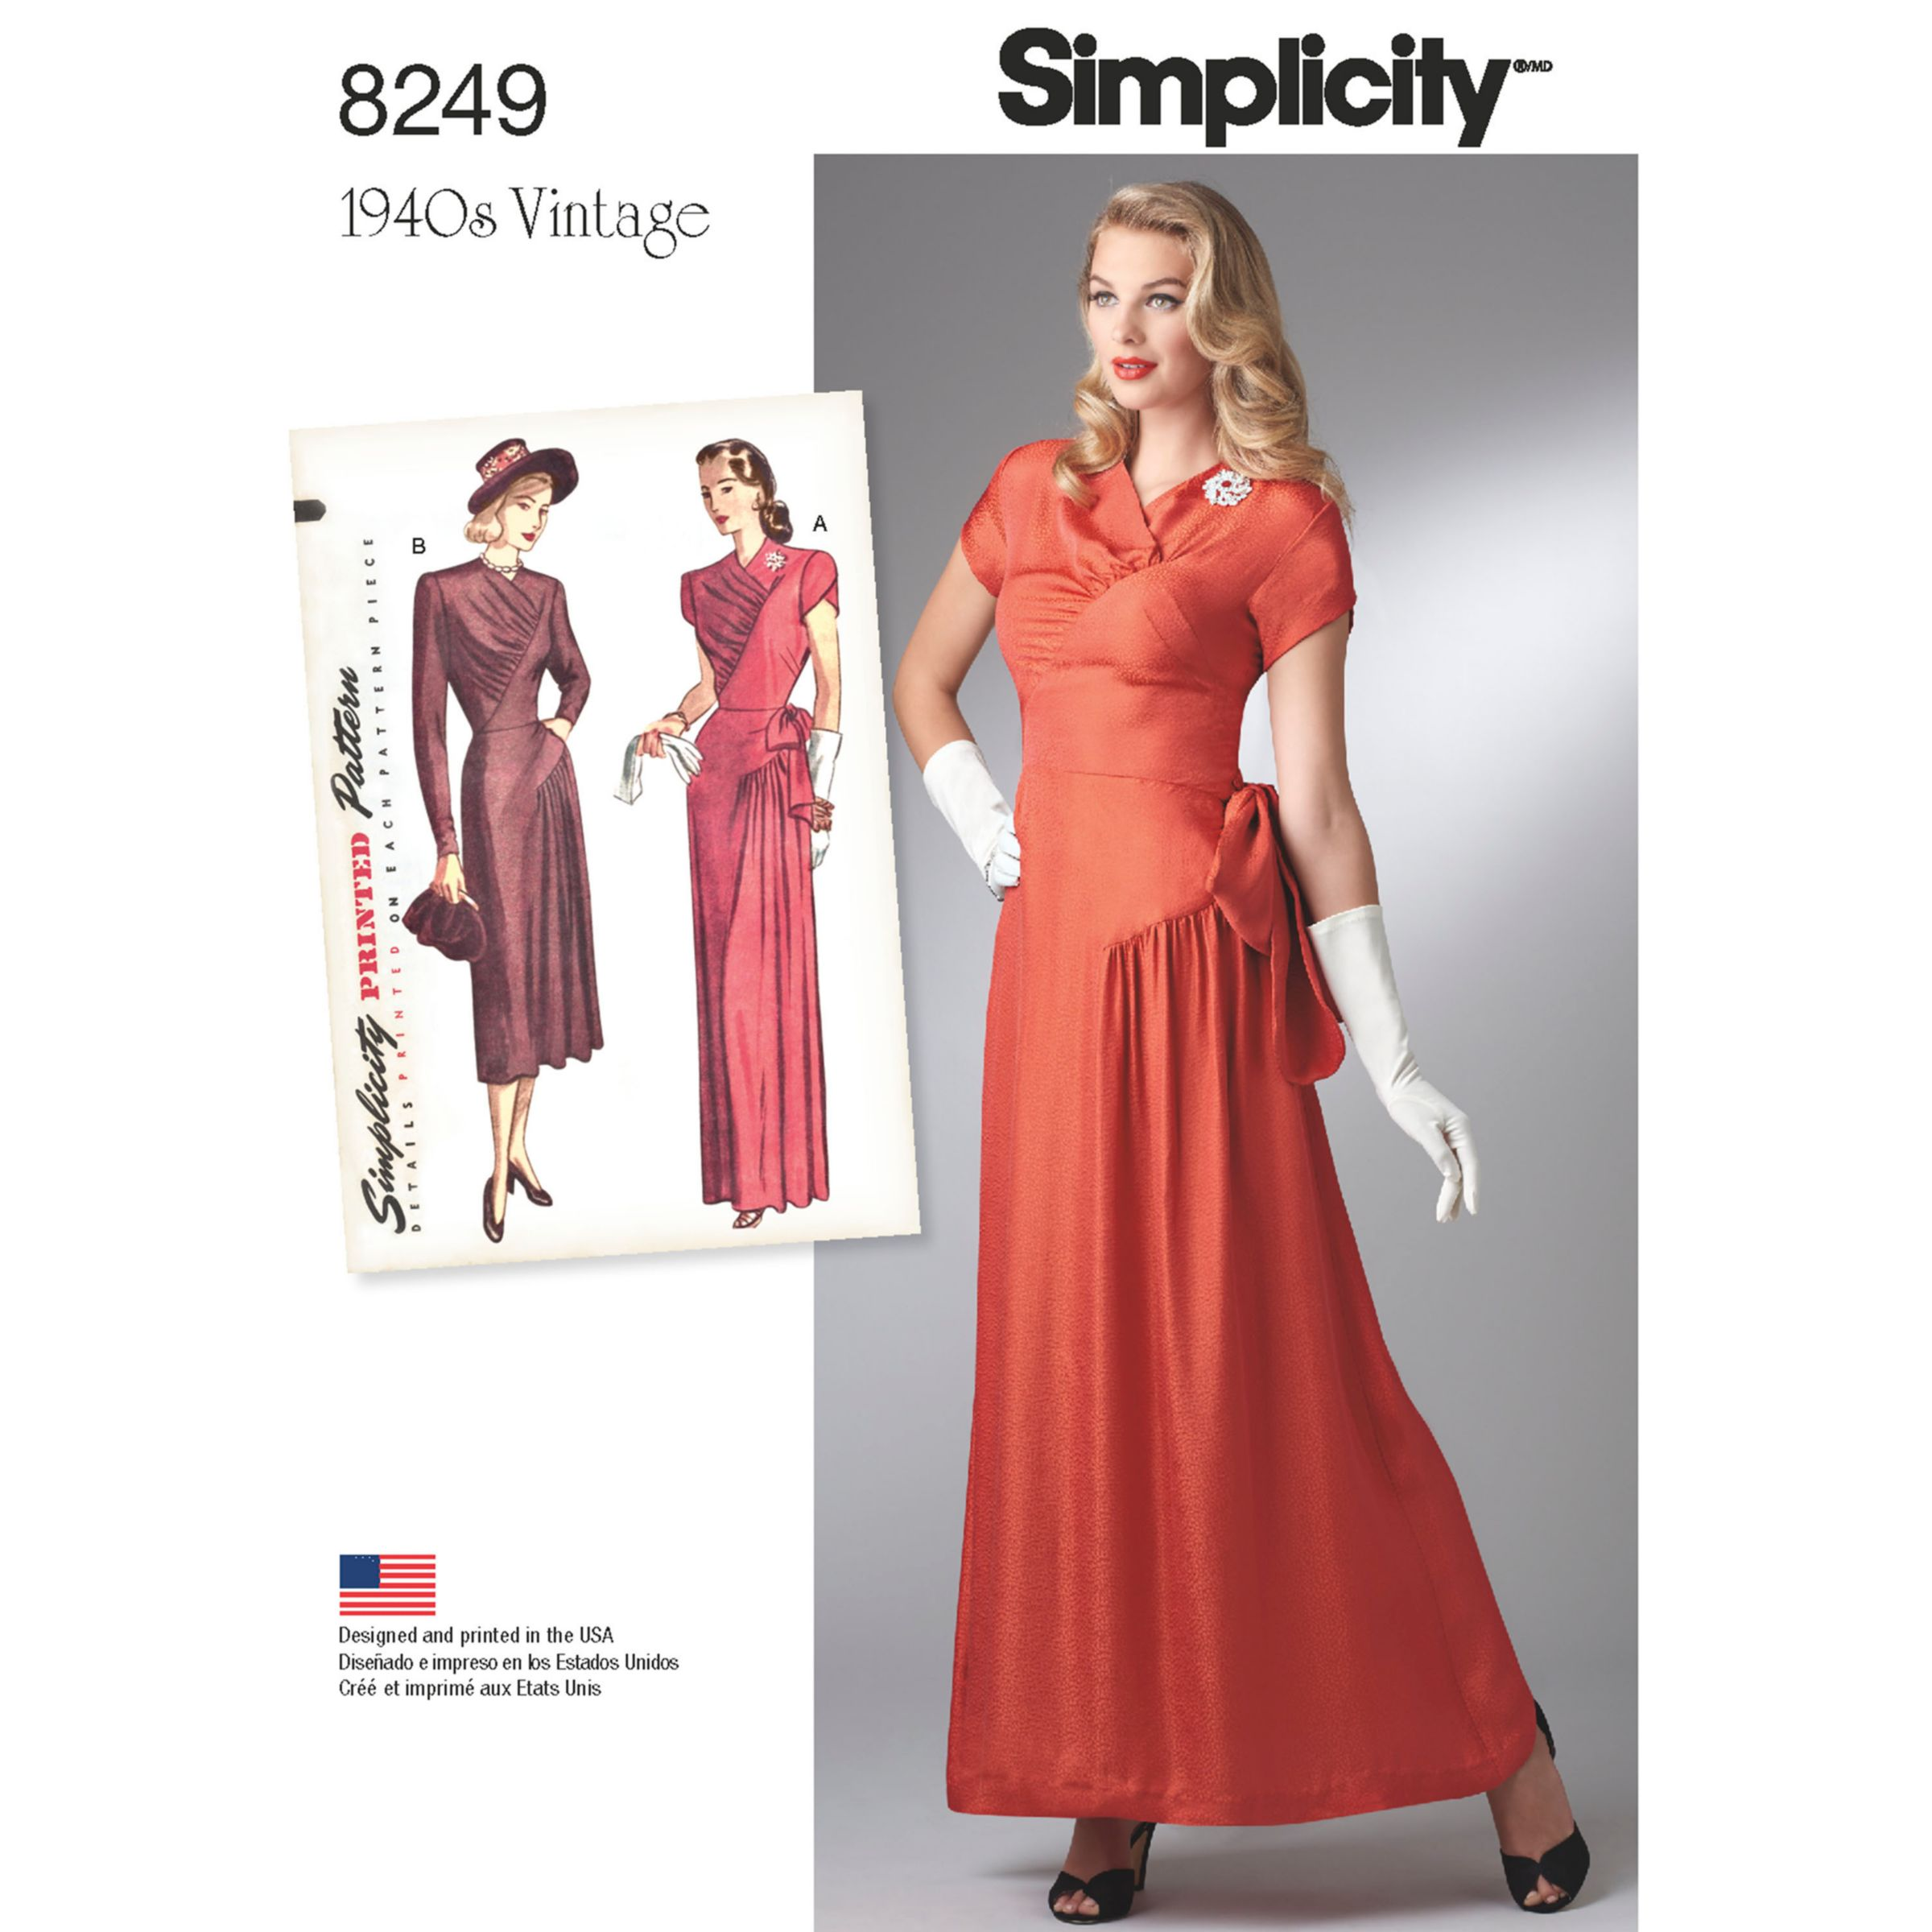 Simplicity Simplicity Vintage Women's 1940s Gown and Dress Sewing Pattern, 8249